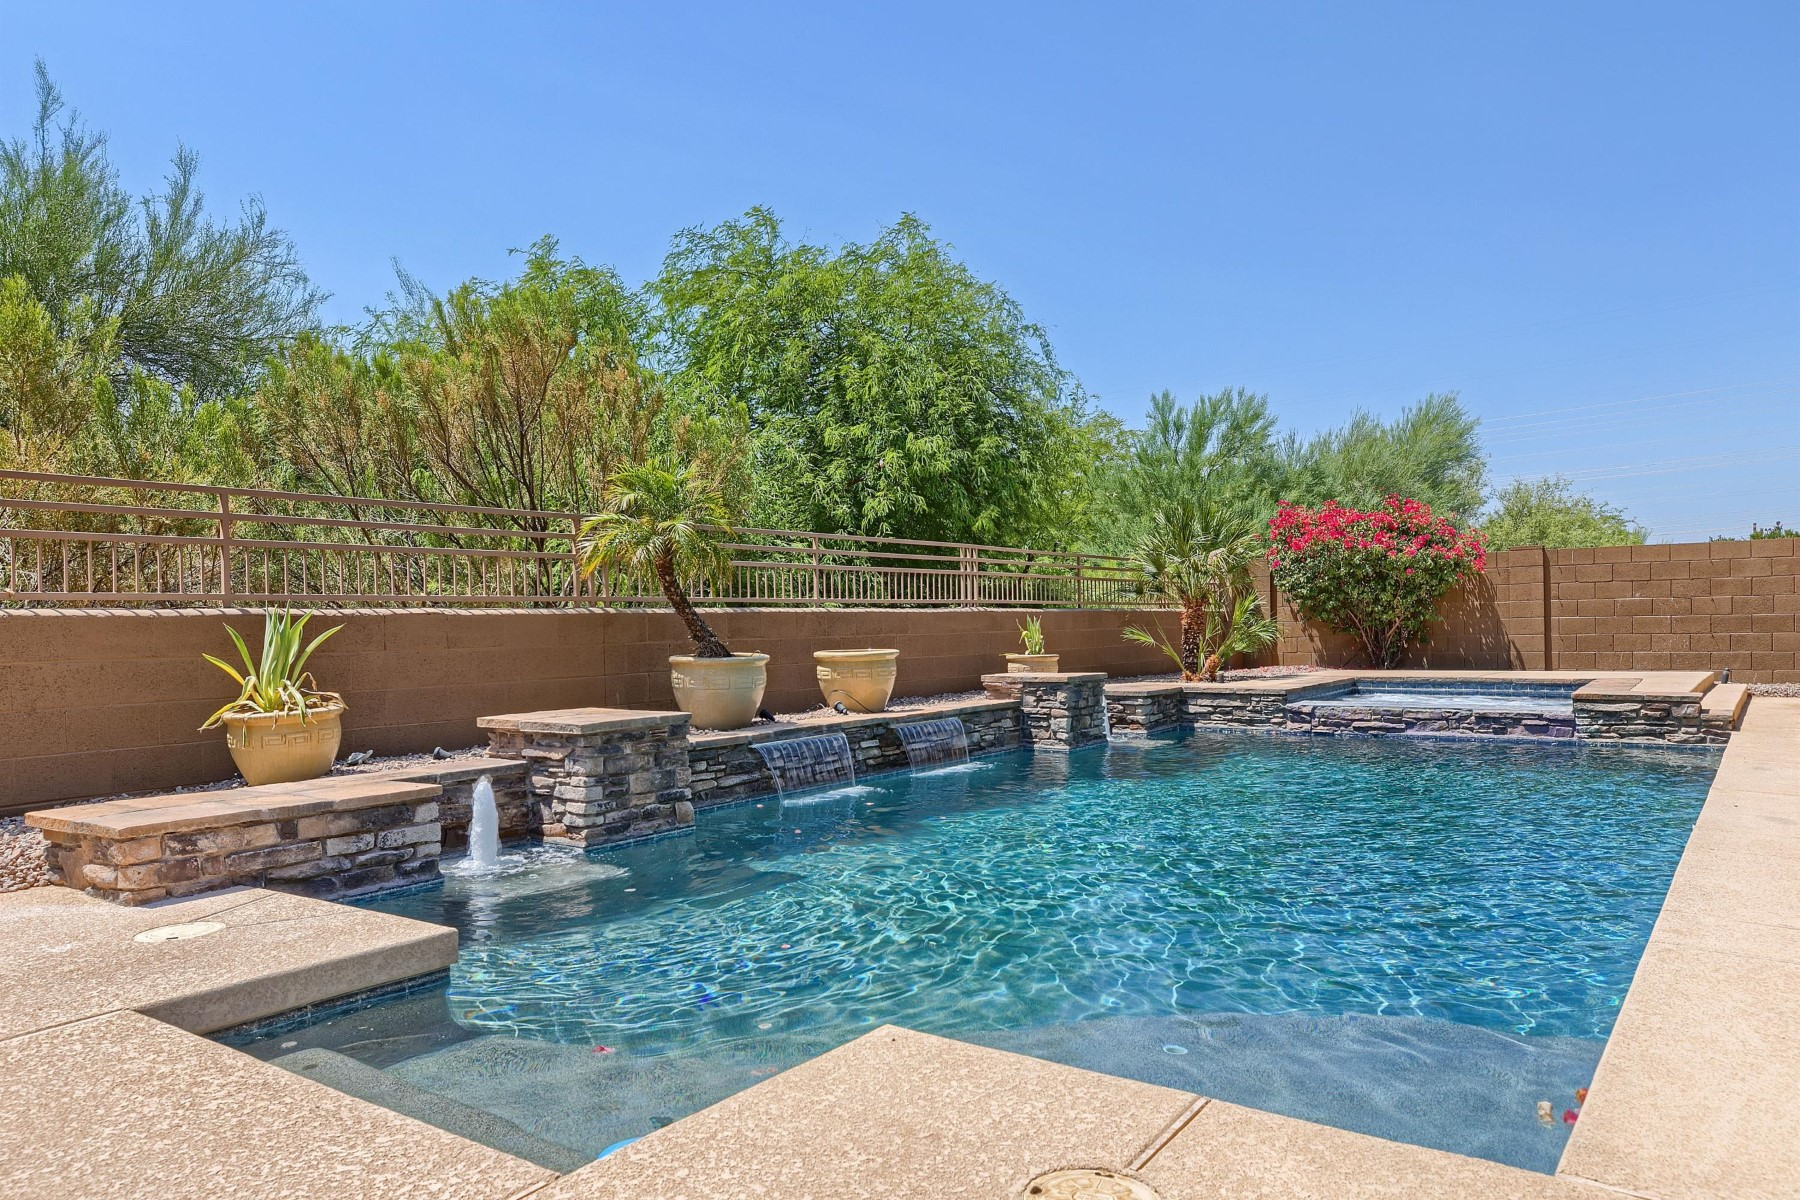 Single Family Home for Sale at Gorgeous remodel in Grayhawk Raptor Retreat 7931 E Rose Garden Ln Scottsdale, Arizona, 85255 United States